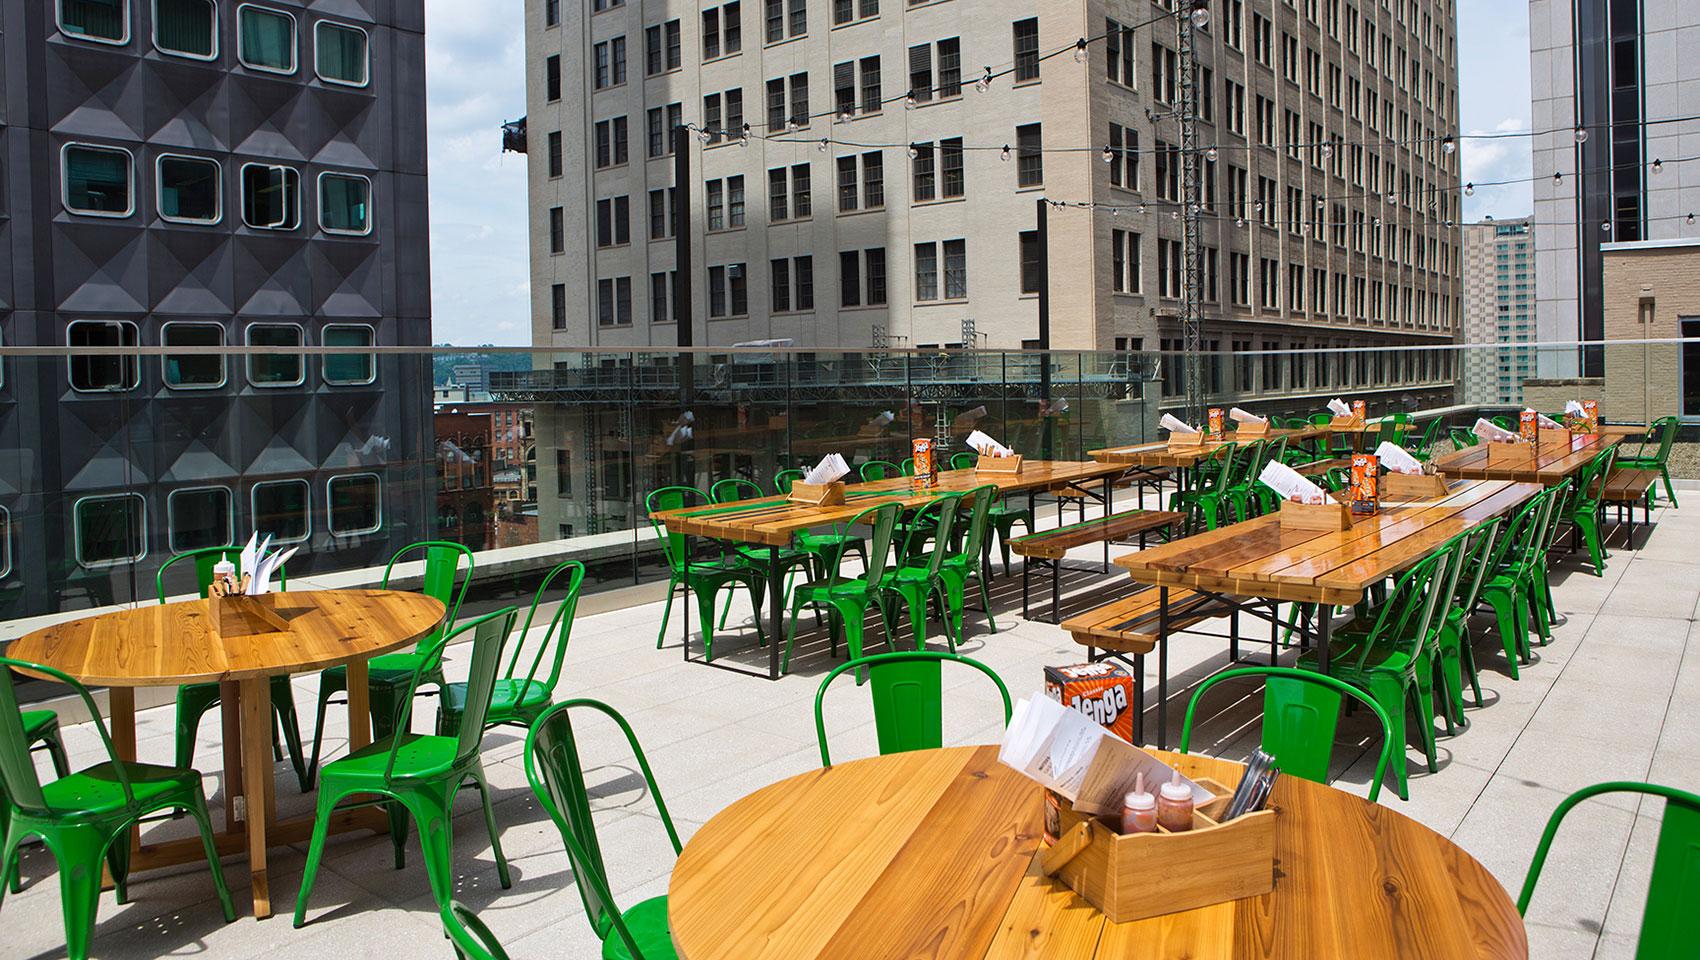 Biergarten's rooftop patio with picnic tables and chairs